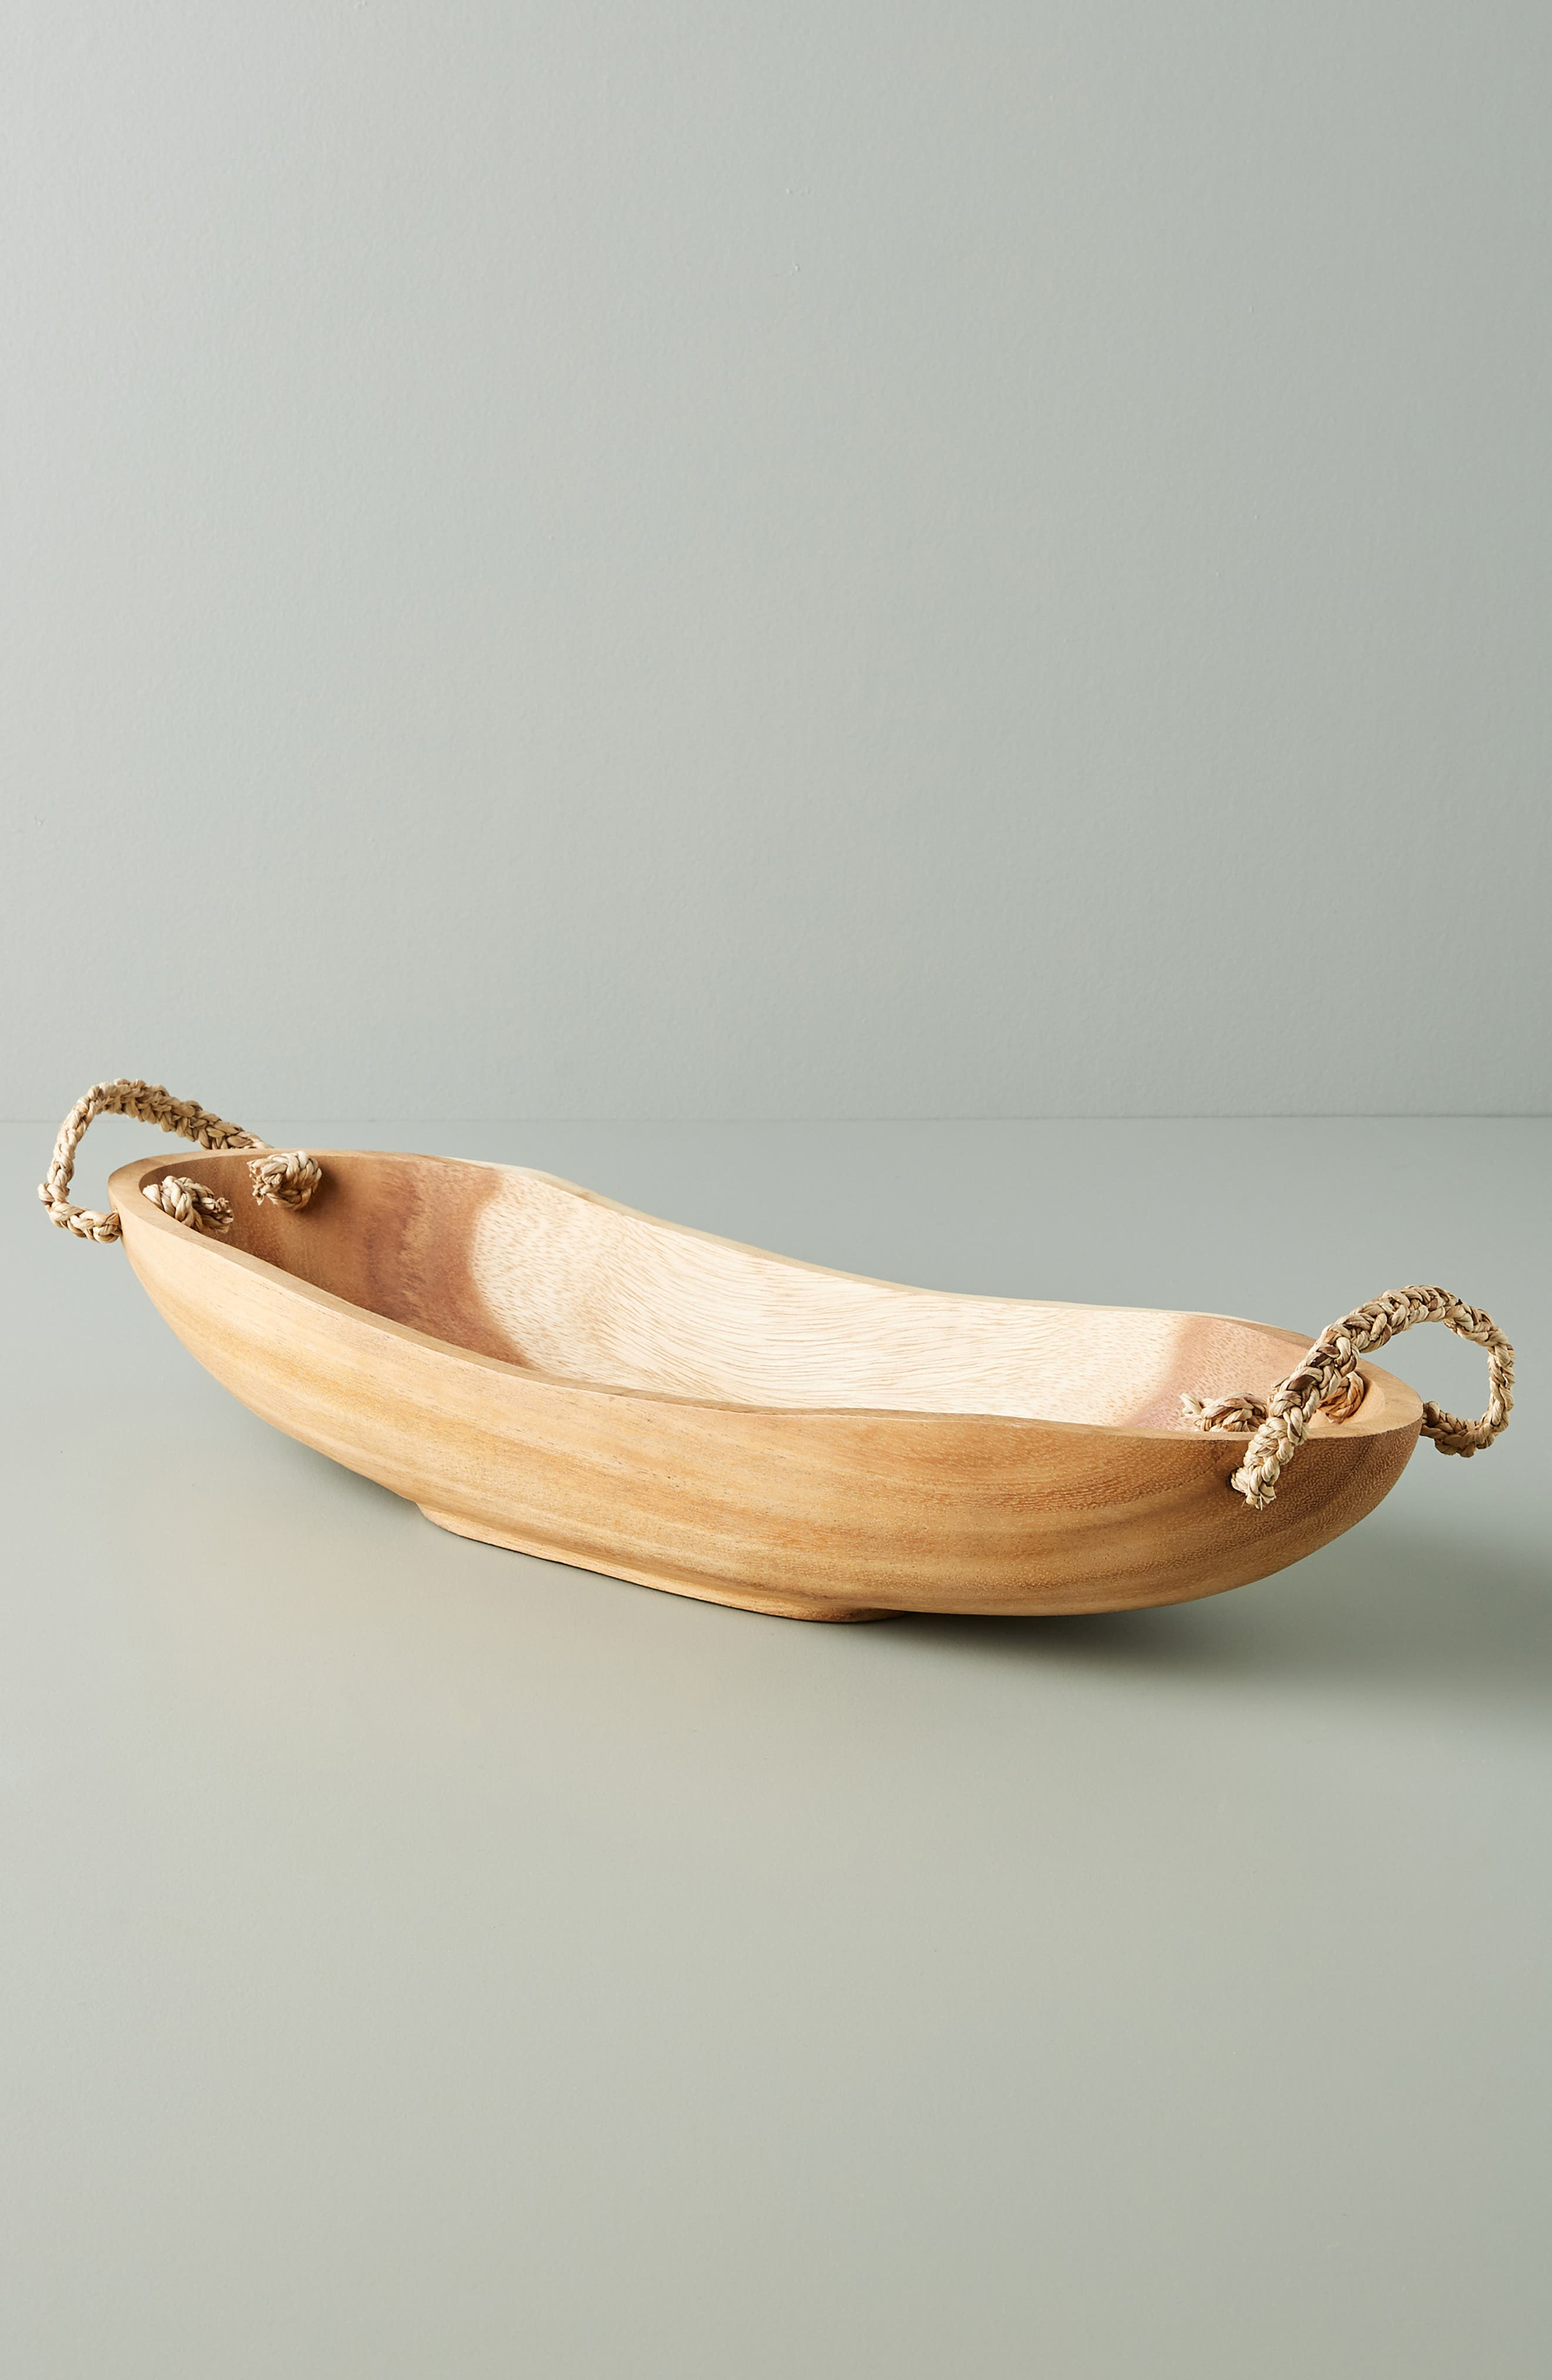 Hand carved from solid acacia wood with woven rope handles, this elongated bowl makes an elegant way to display fruit and more. Style Name: Anthropologie Home Olmena Serving Bowl. Style Number: 5998641. Available in stores.